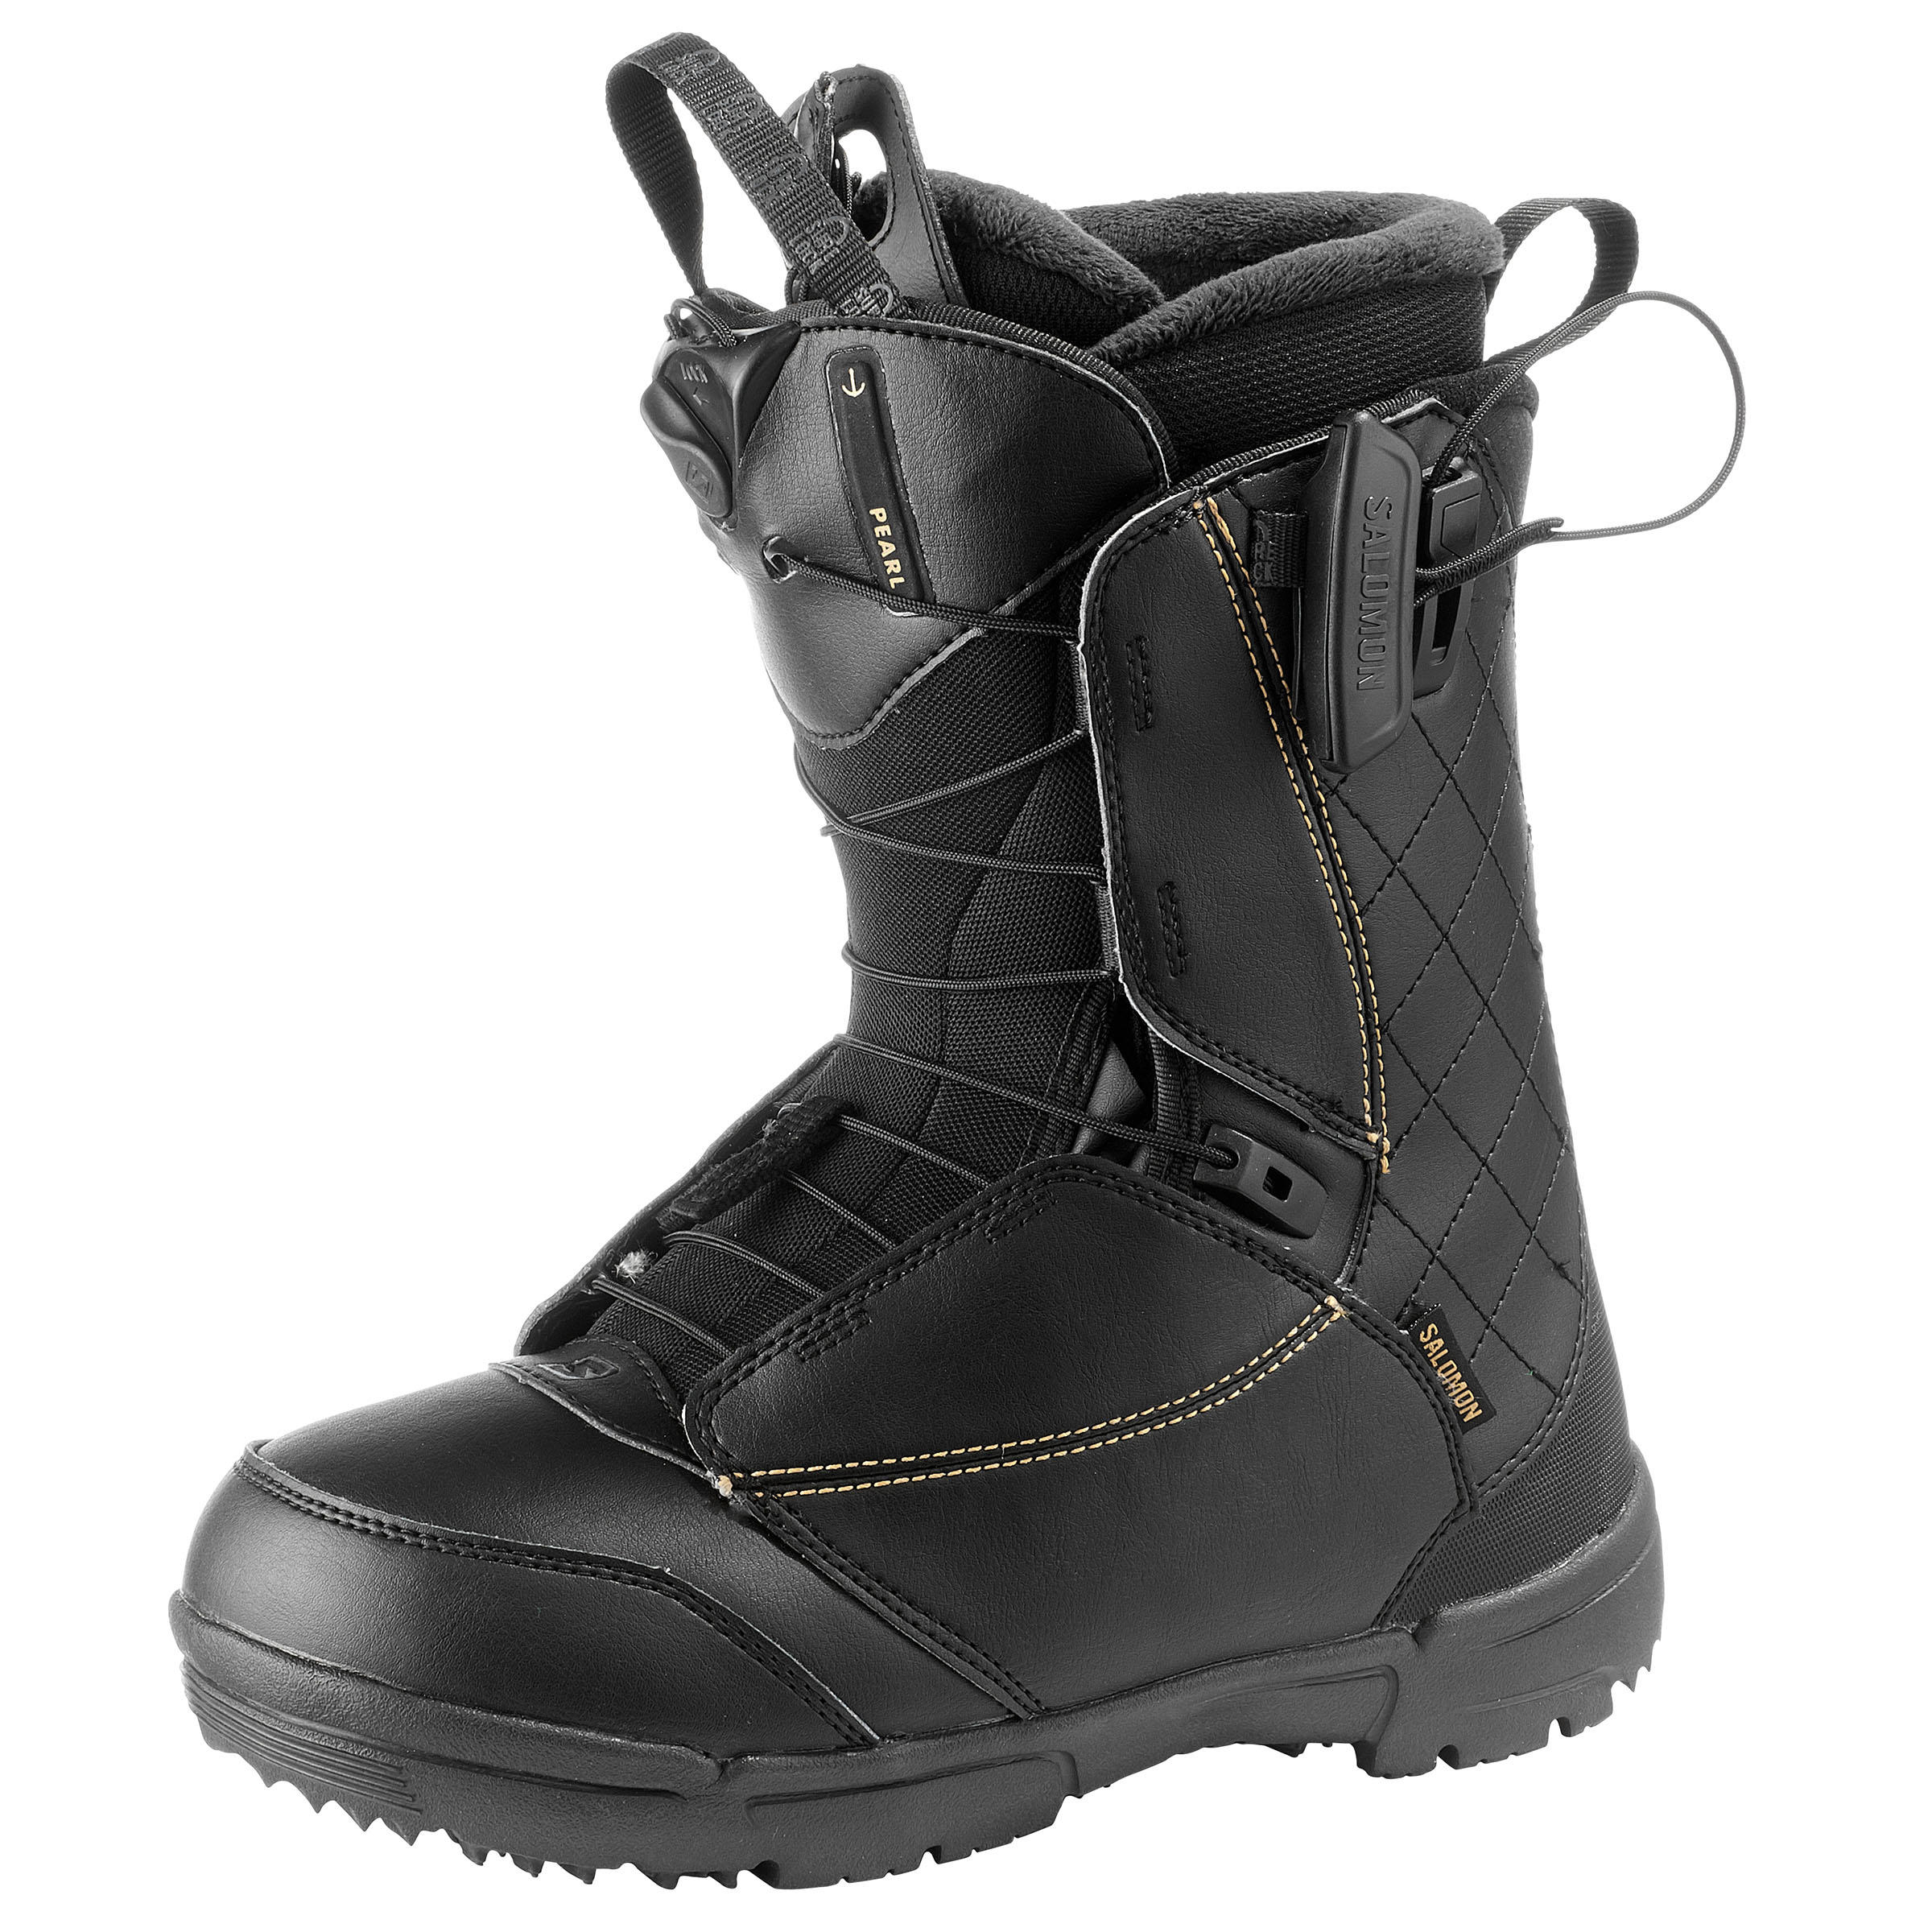 Salomon Snowboardboots all mountain dames Pearl Zone Lock zwart thumbnail